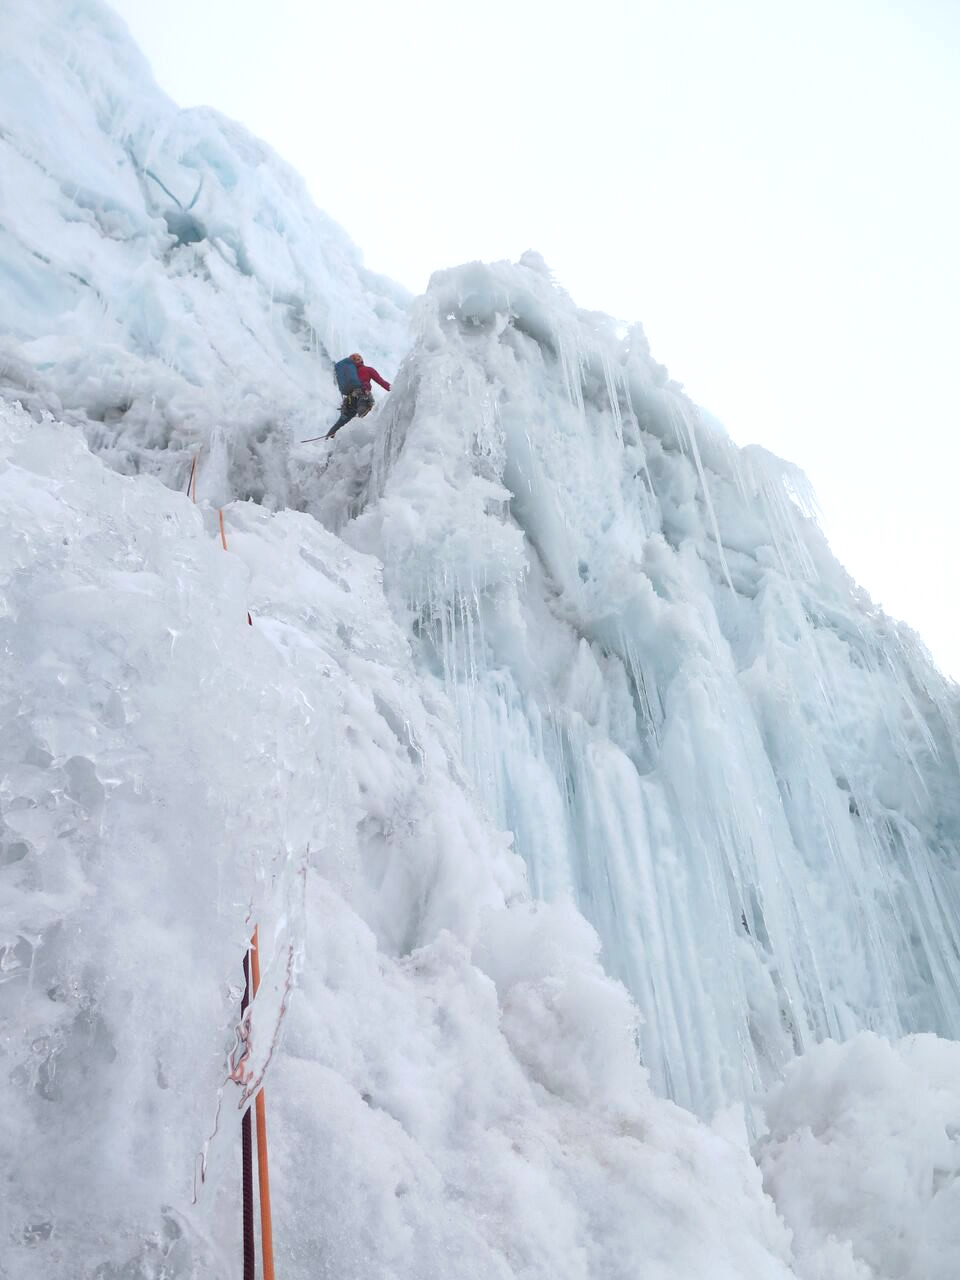 Ben Dare navigating the final overhanging ice pitch which topps out directly on the summit. [Photo] Steve Skelton